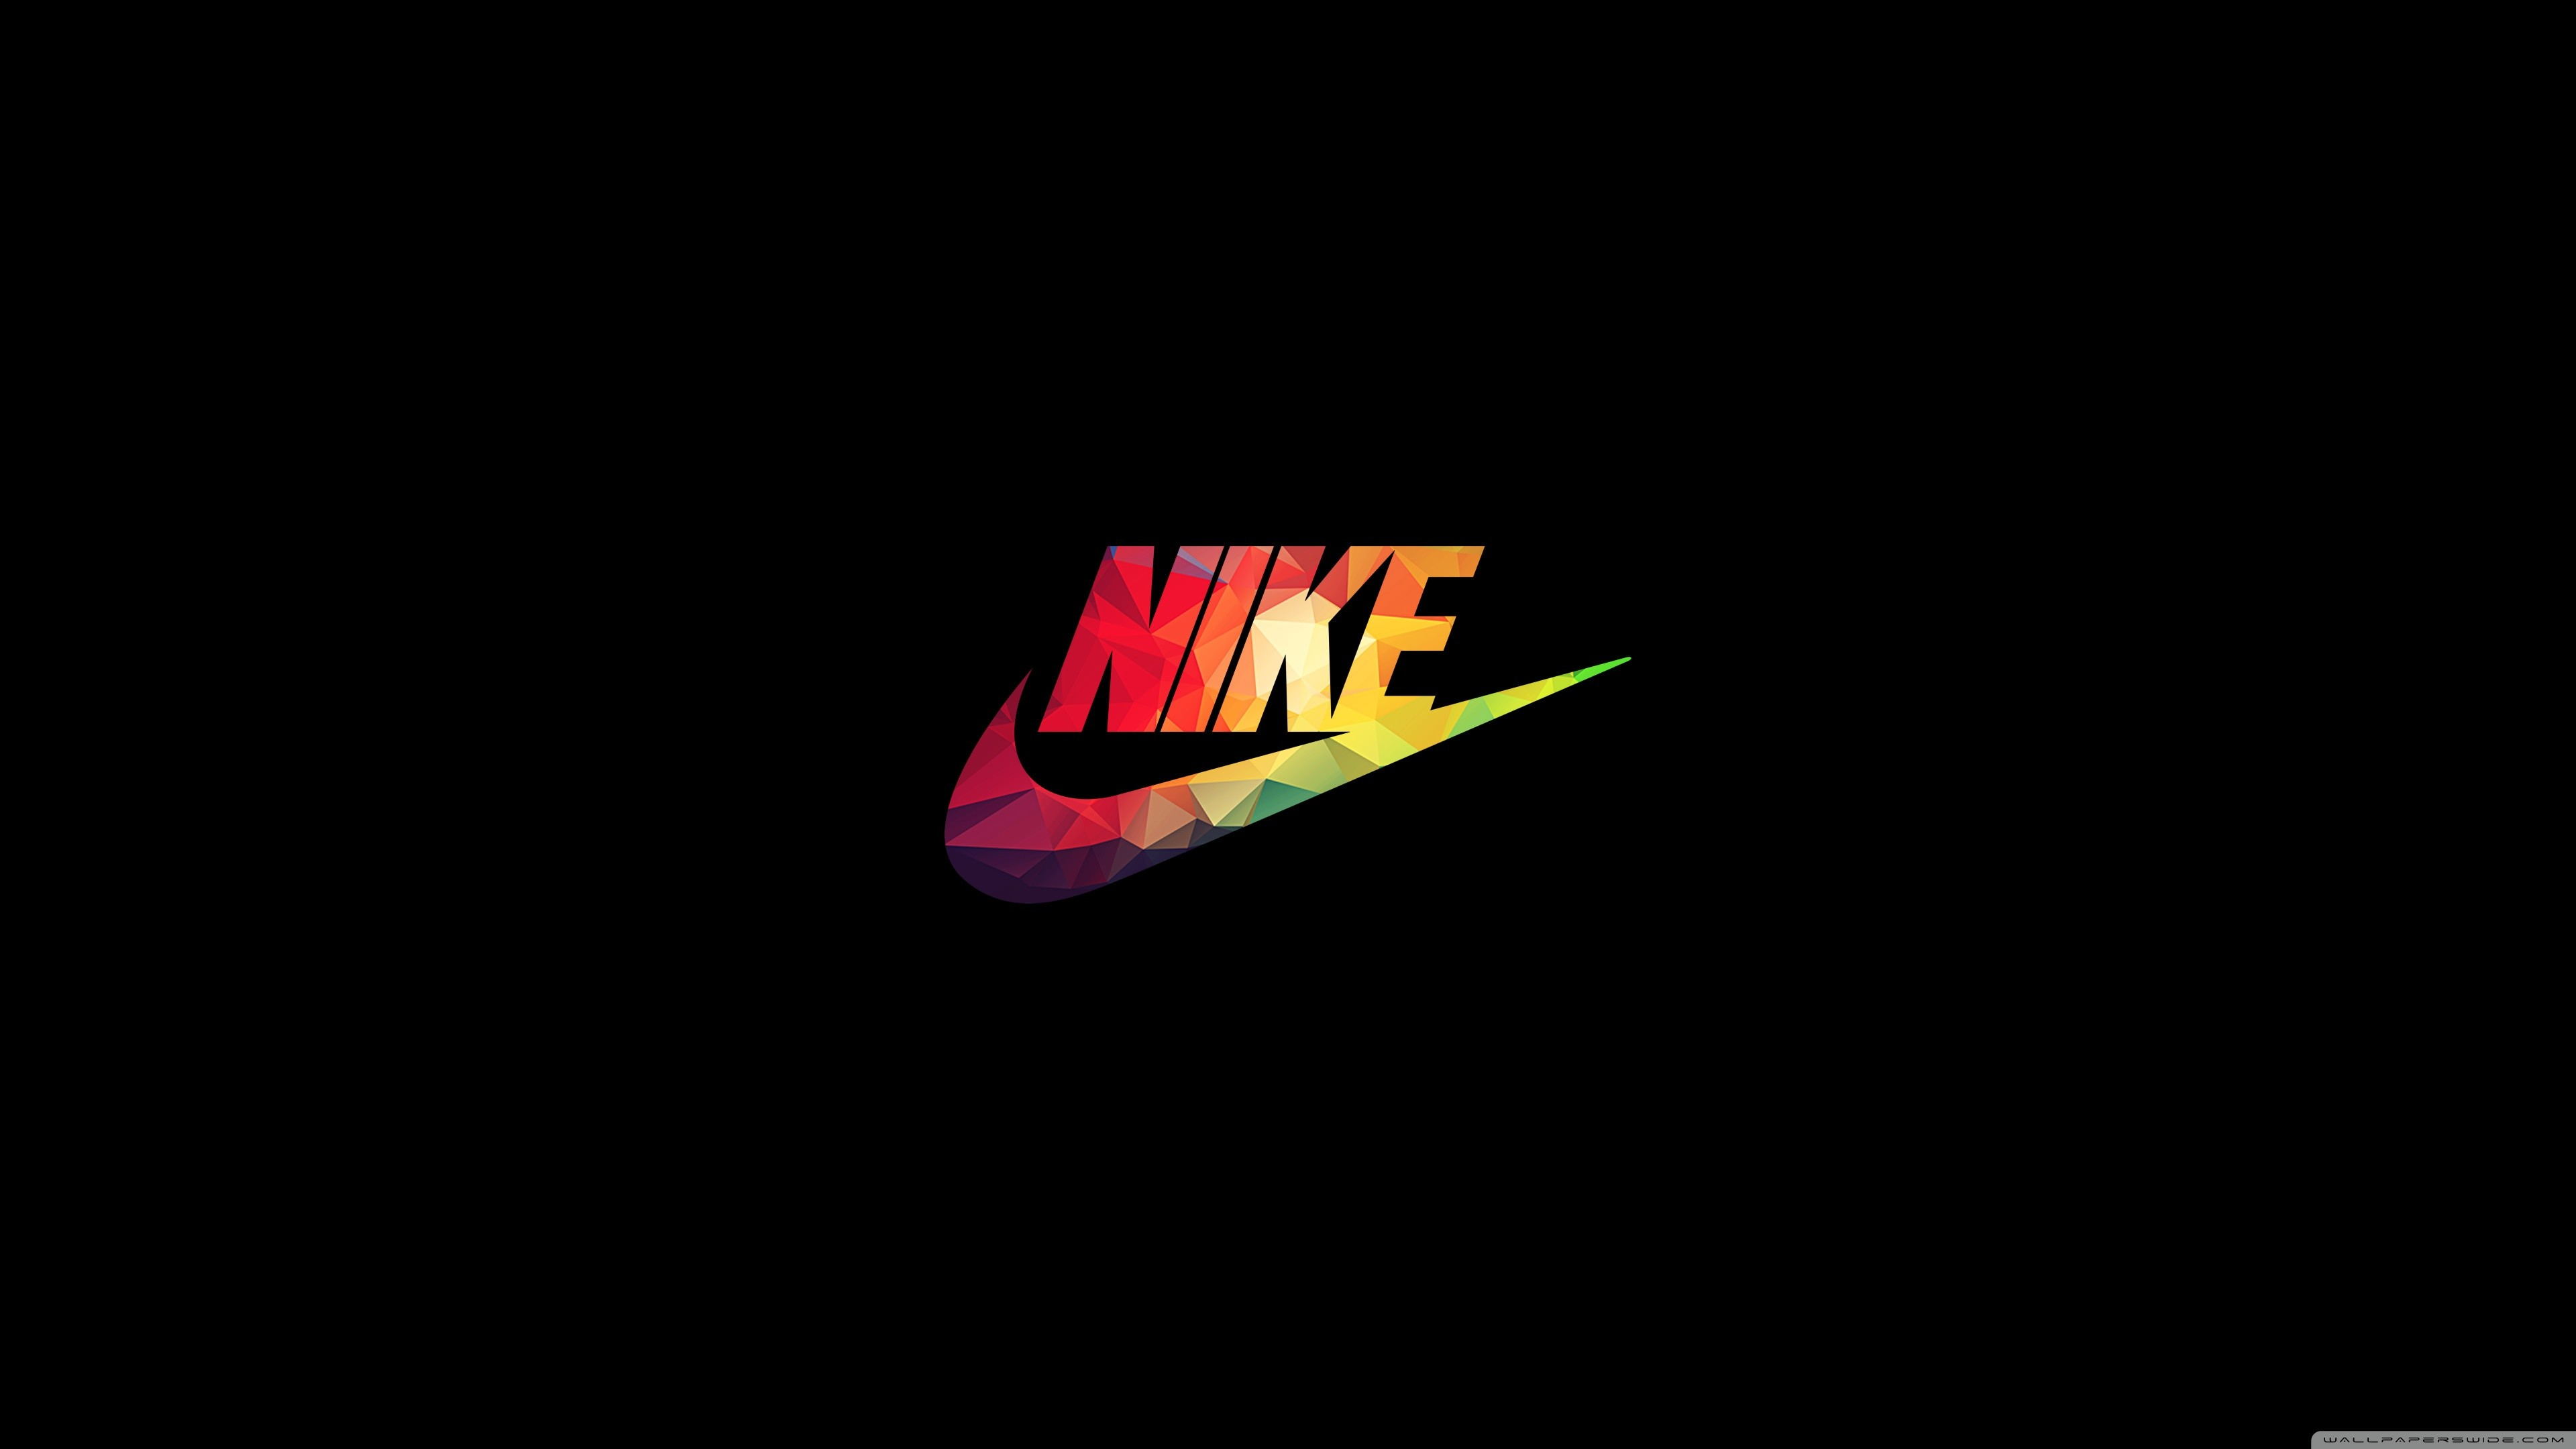 1920x1200 Download Free Nike Sb Logo Wallpapers   Wallpapers, Backgrounds .